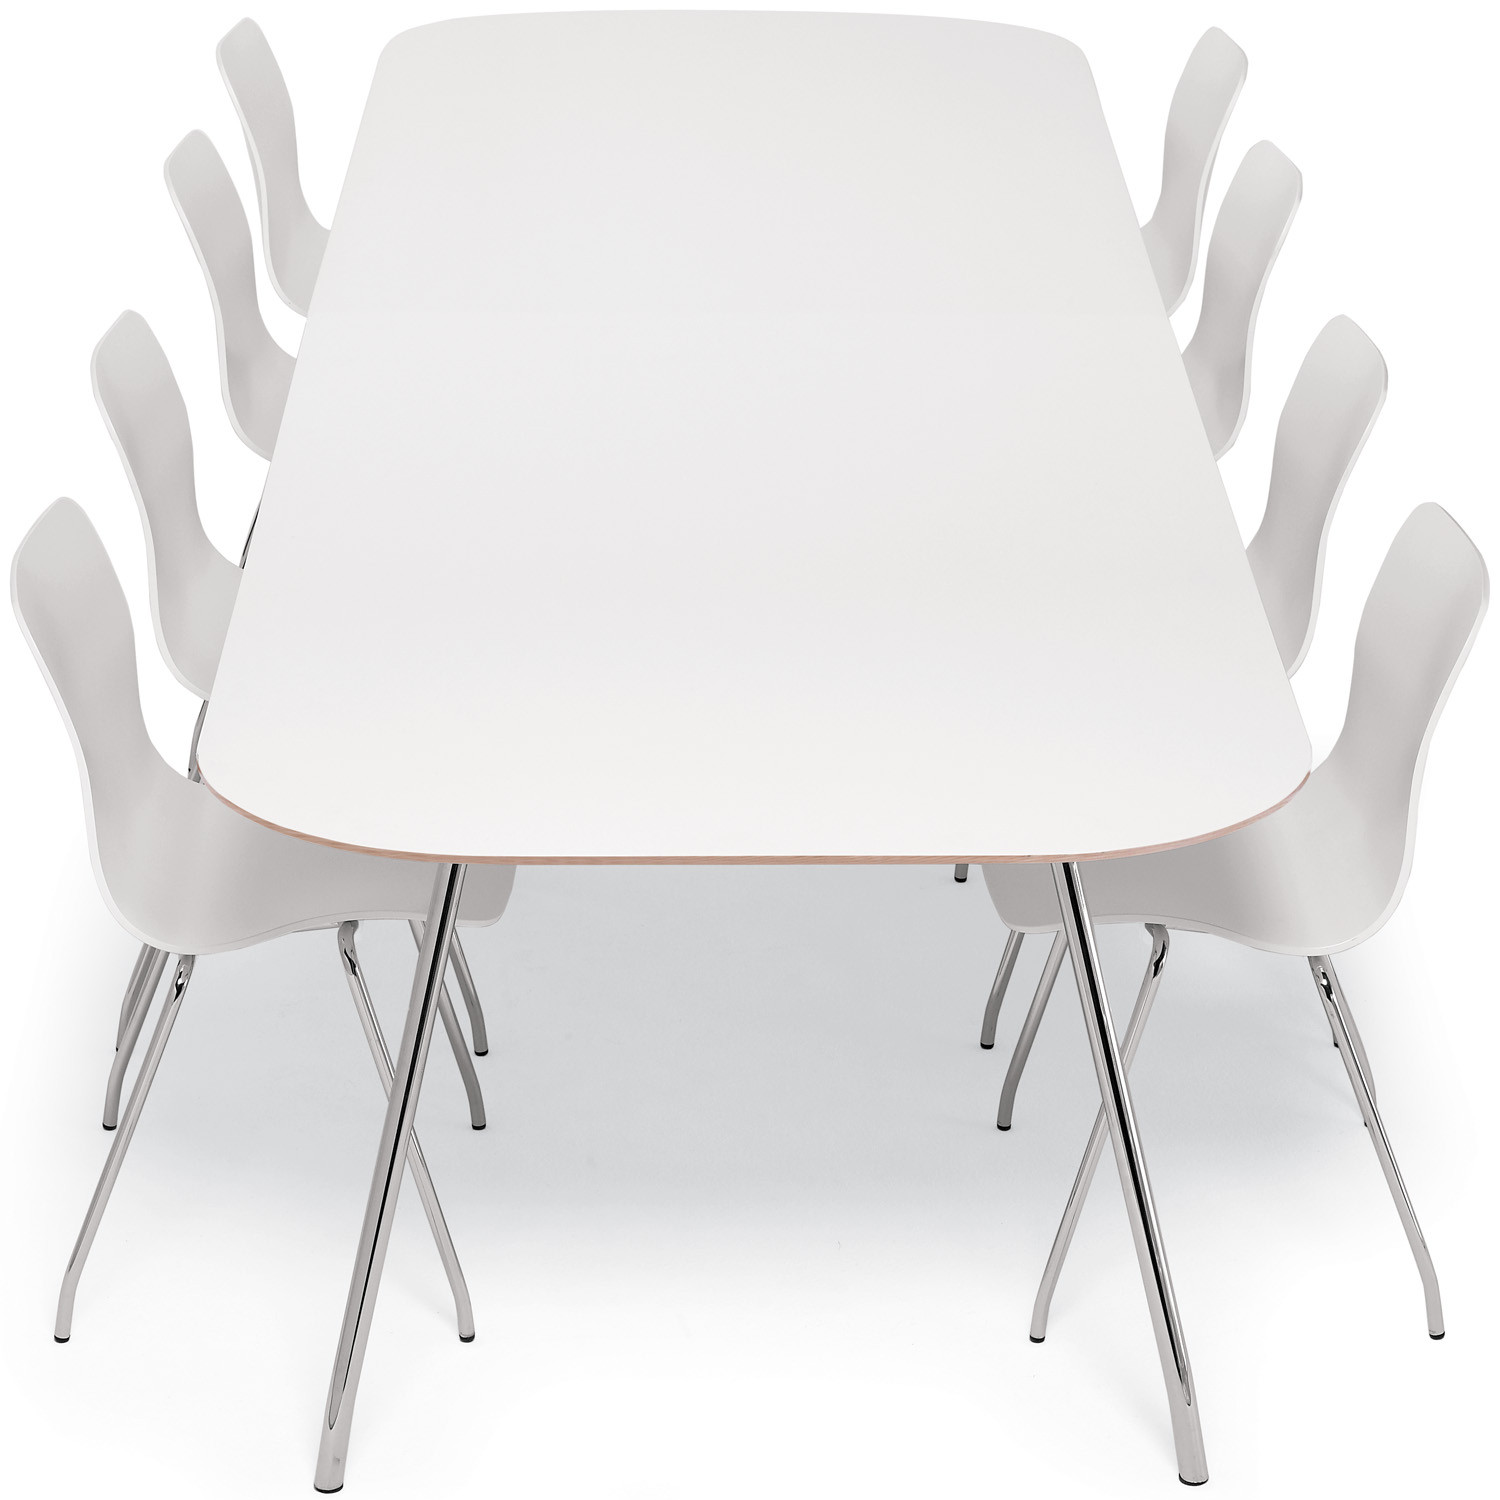 Cornflake Meeting and Conference Table